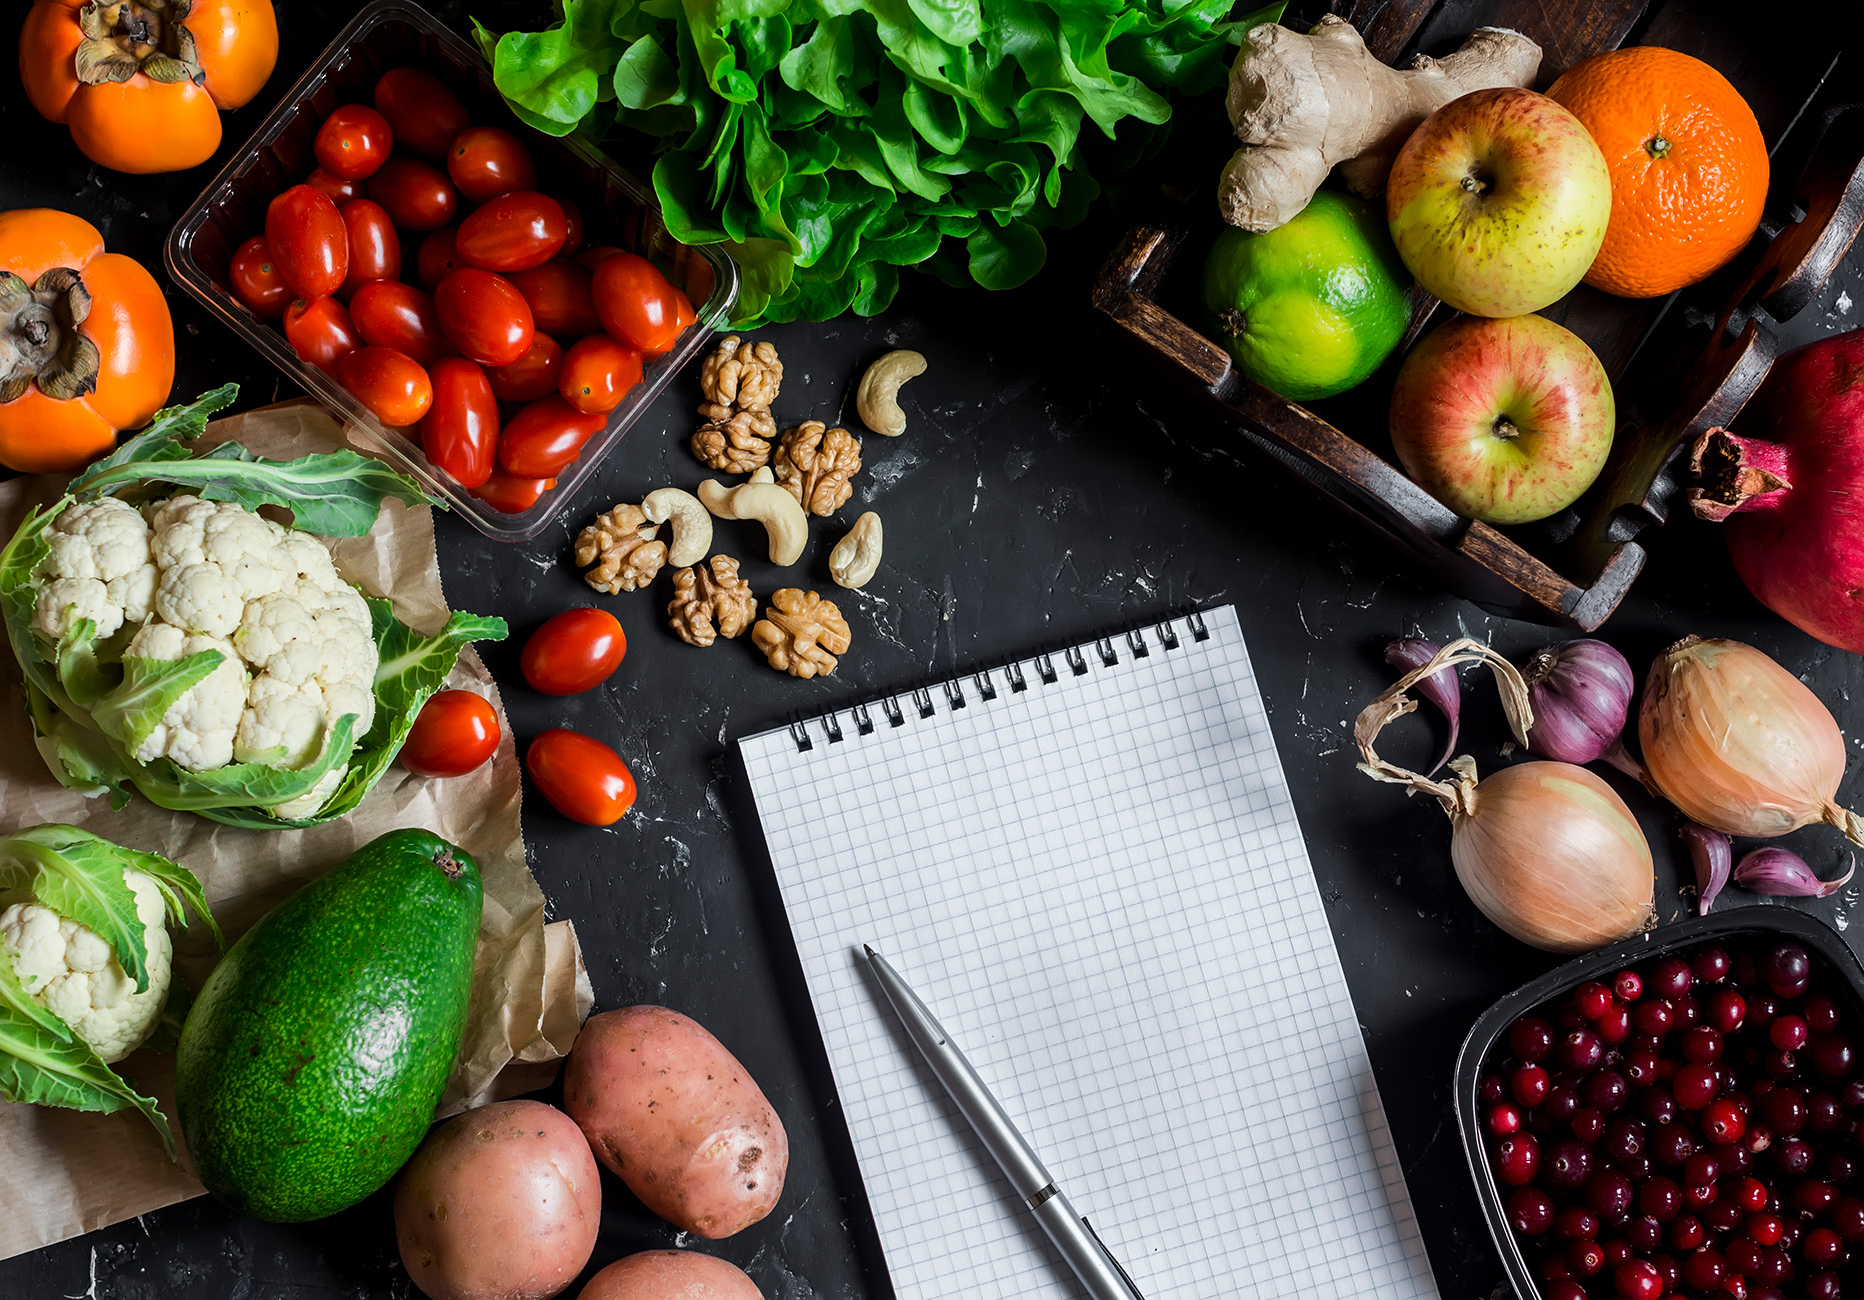 Assortment of fresh vegetables and fruit, clean Notepad